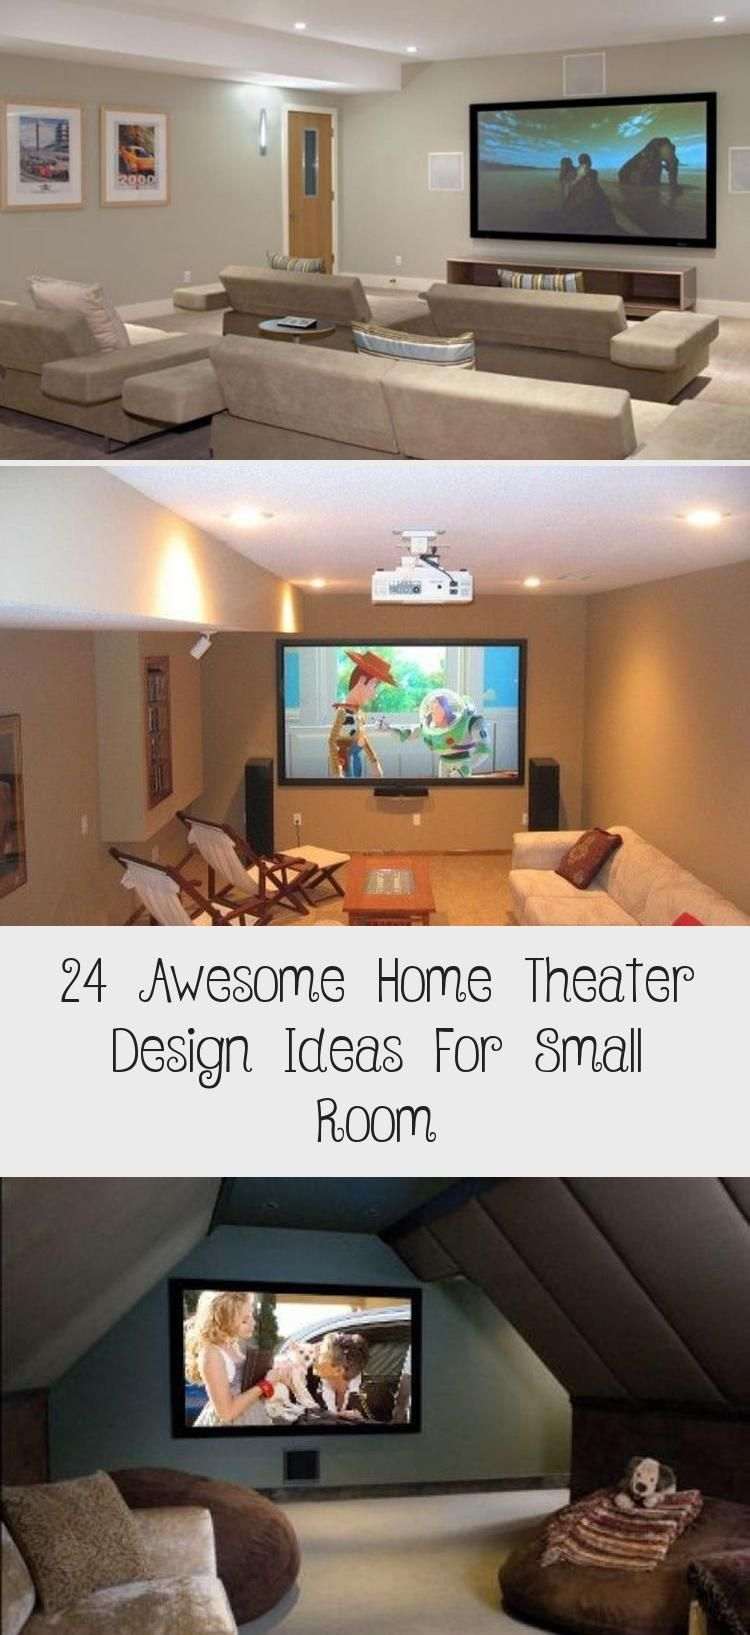 24 Awesome Home Theater Design Ideas For Small Room Design Awesome Home Theater Design Idea In 2020 Home Theater Design Small Home Theaters Home Theater Seating